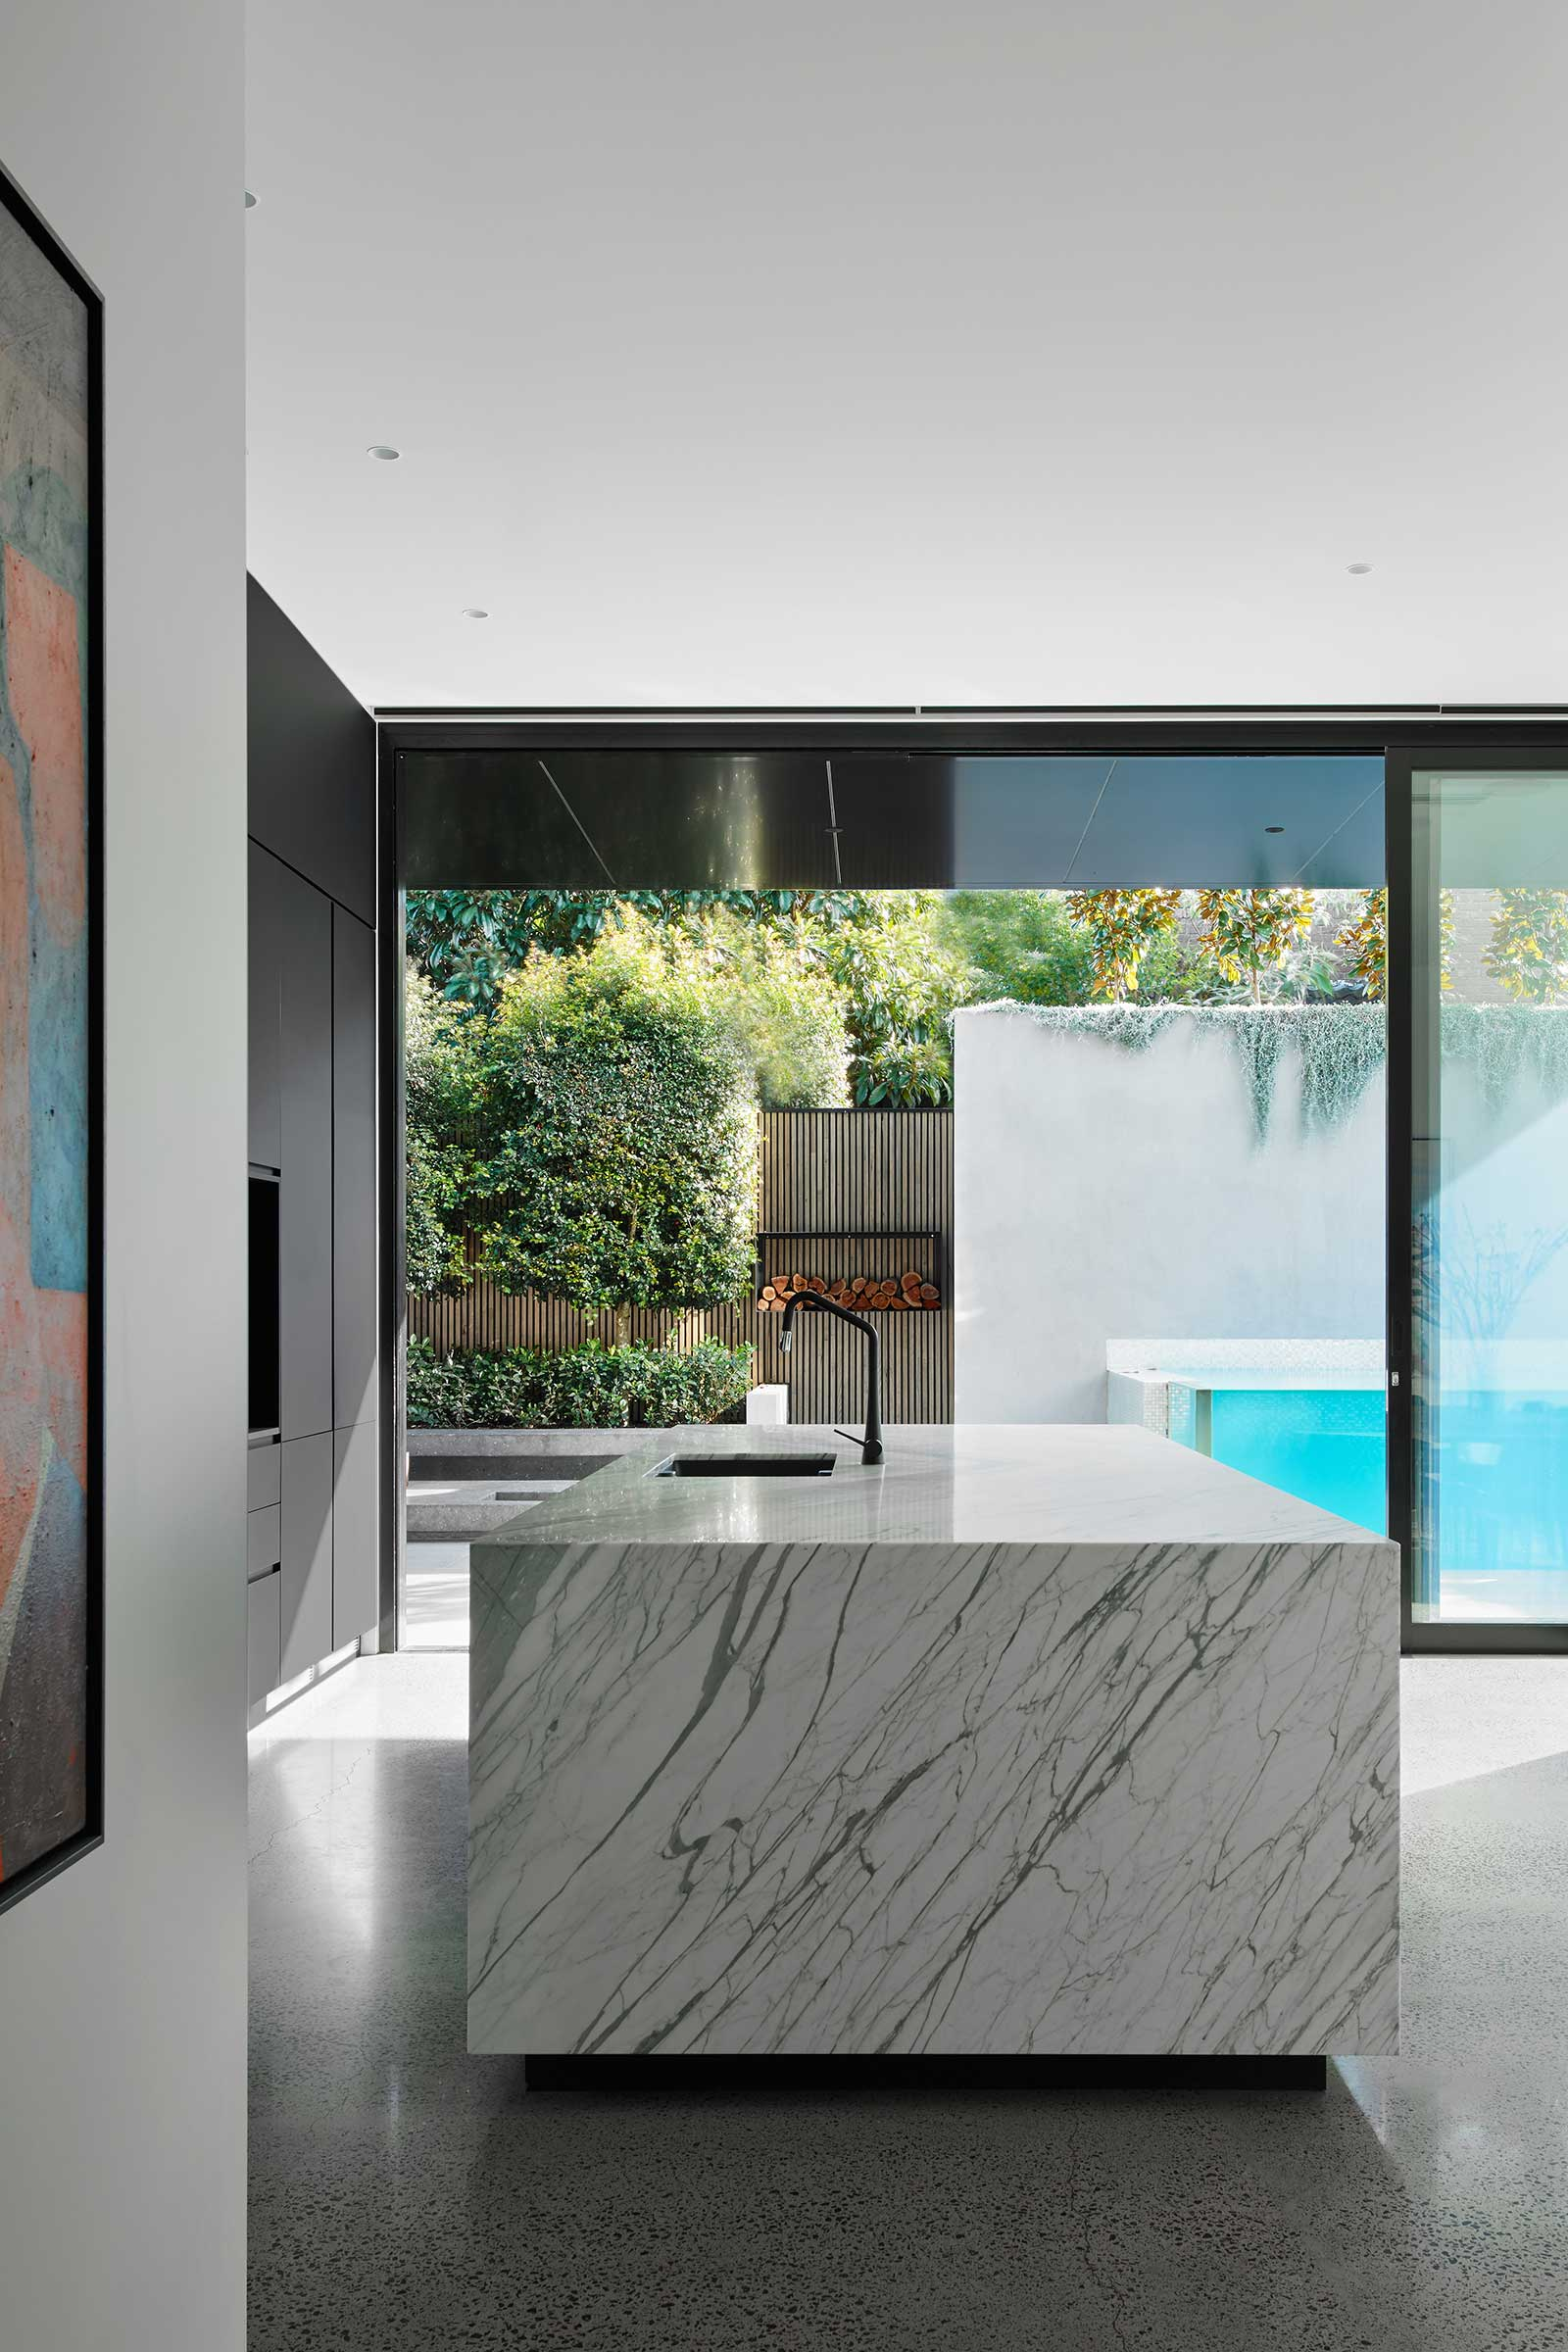 22_taouk_architects_bramley_court_veeral_6174-1_edit_p.jpg